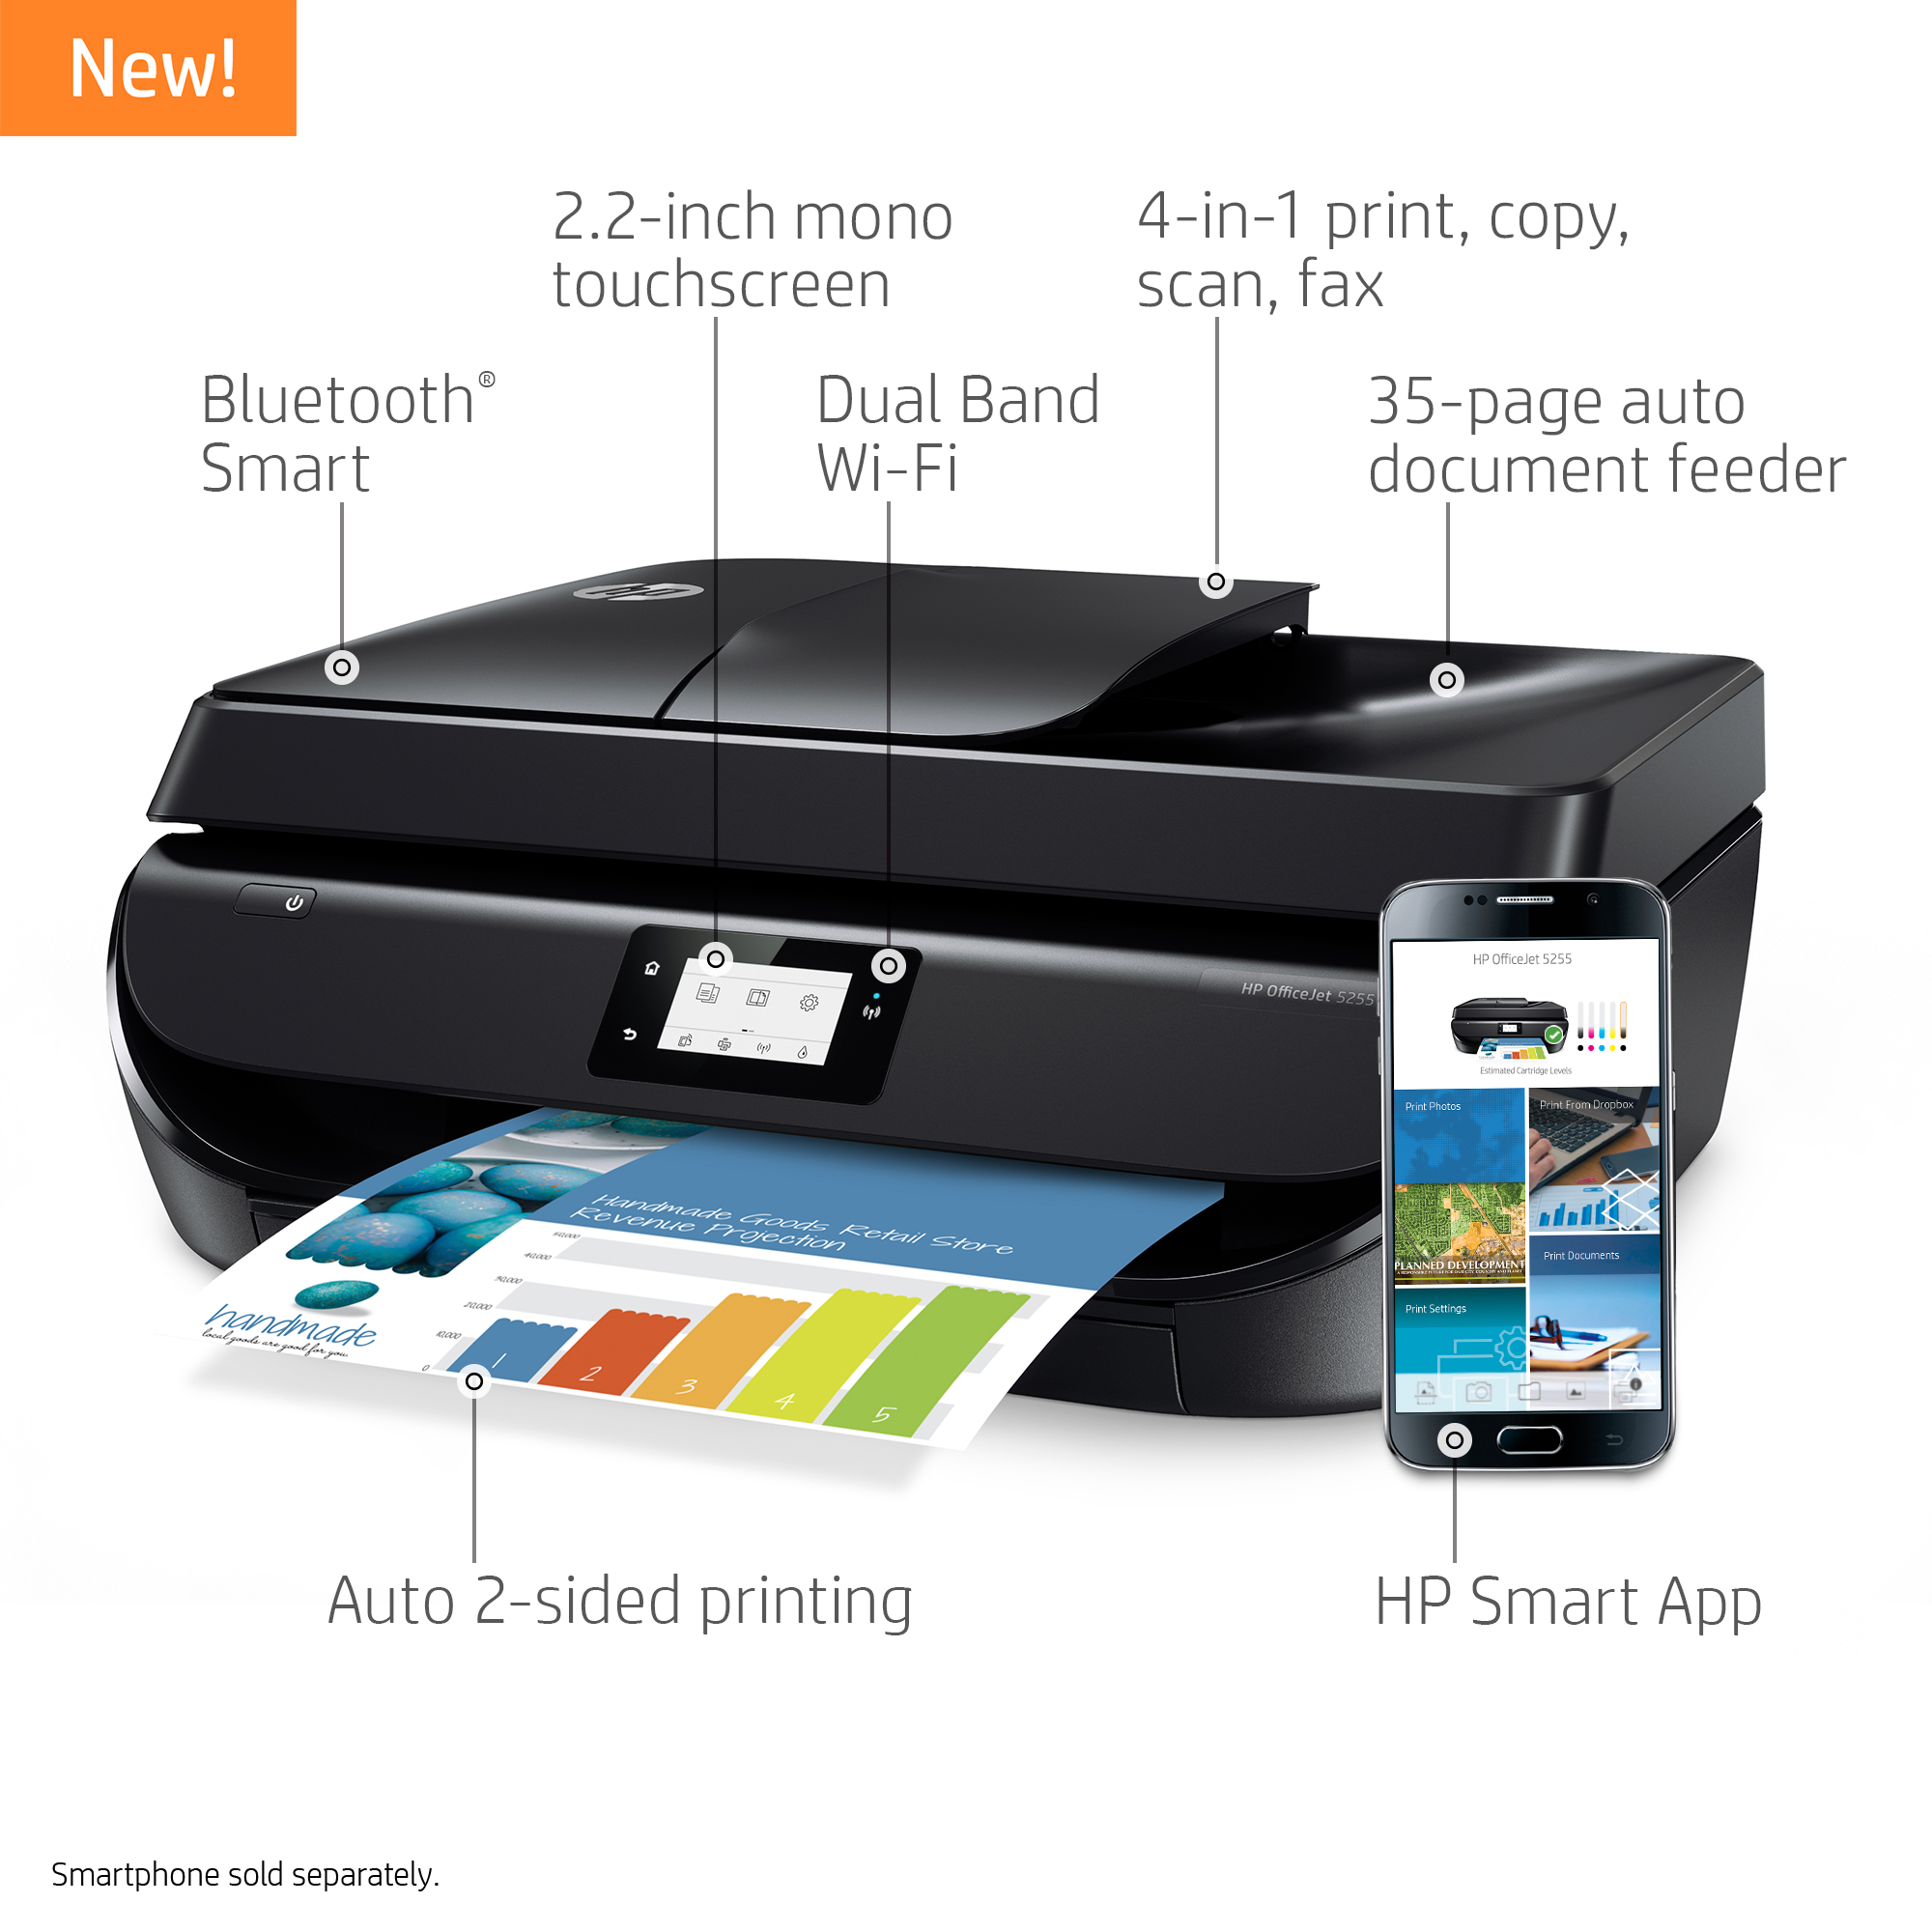 slide 1 of 14,show larger image, hp officejet 5255 all-in-